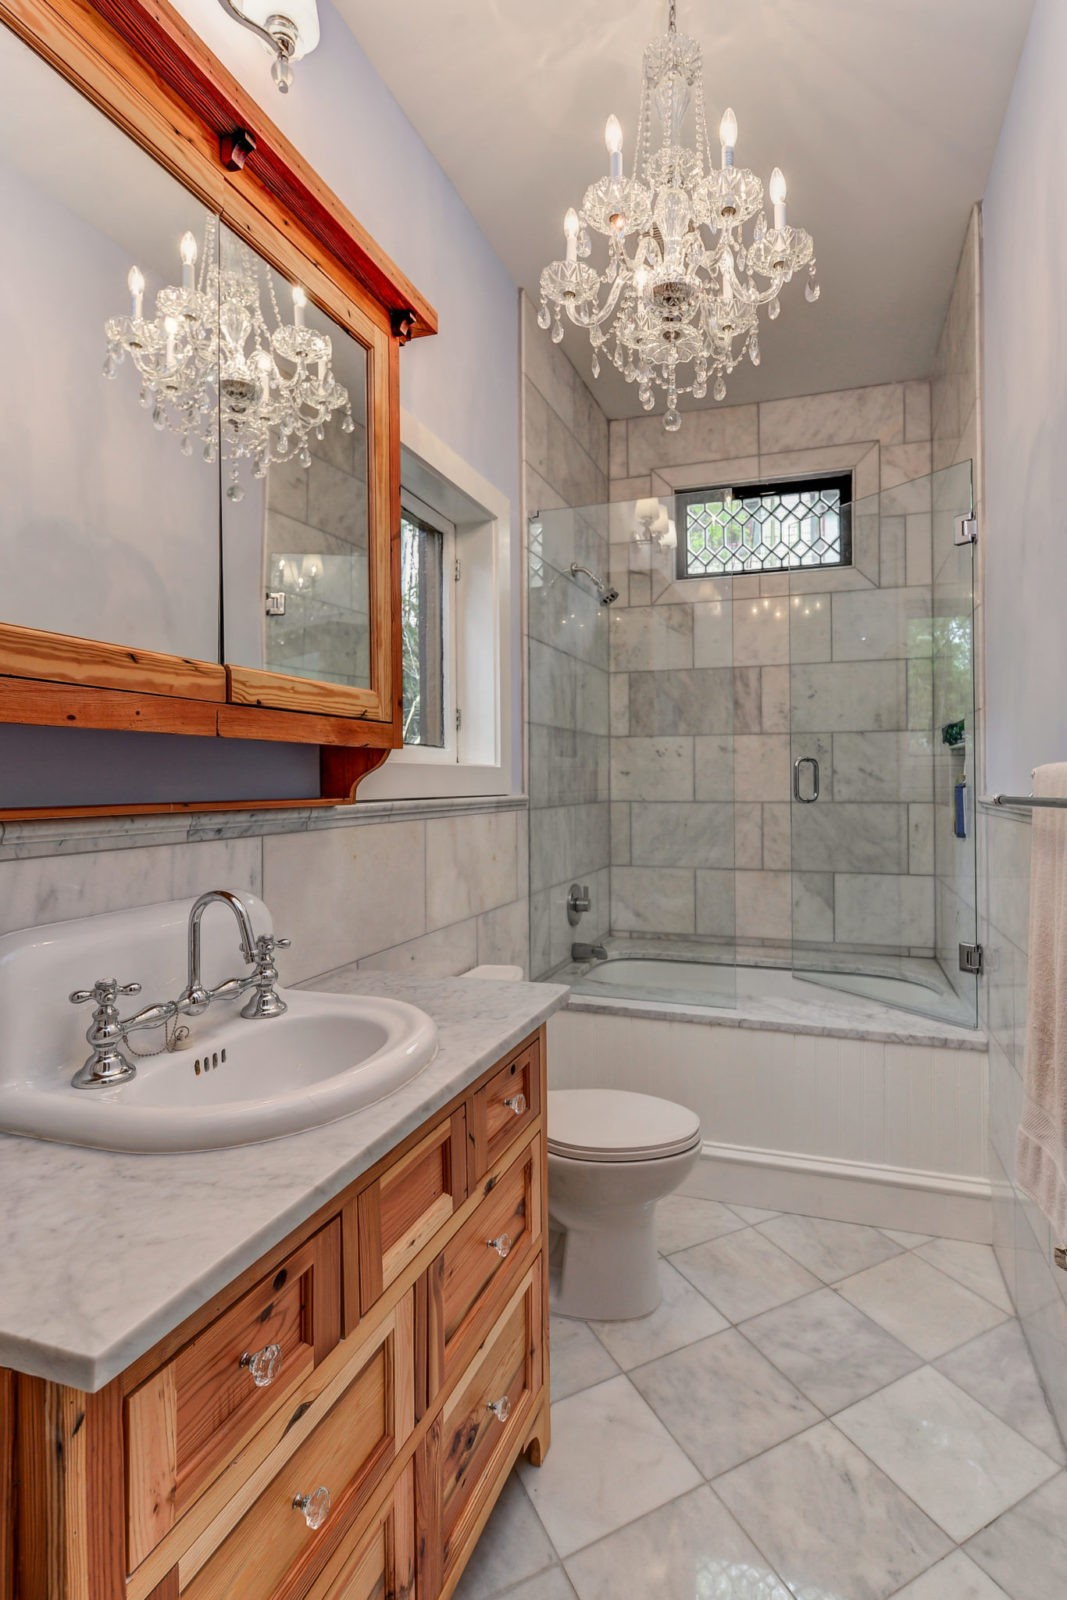 Guest bathroom with marble tile shower and tub, sink and mirror